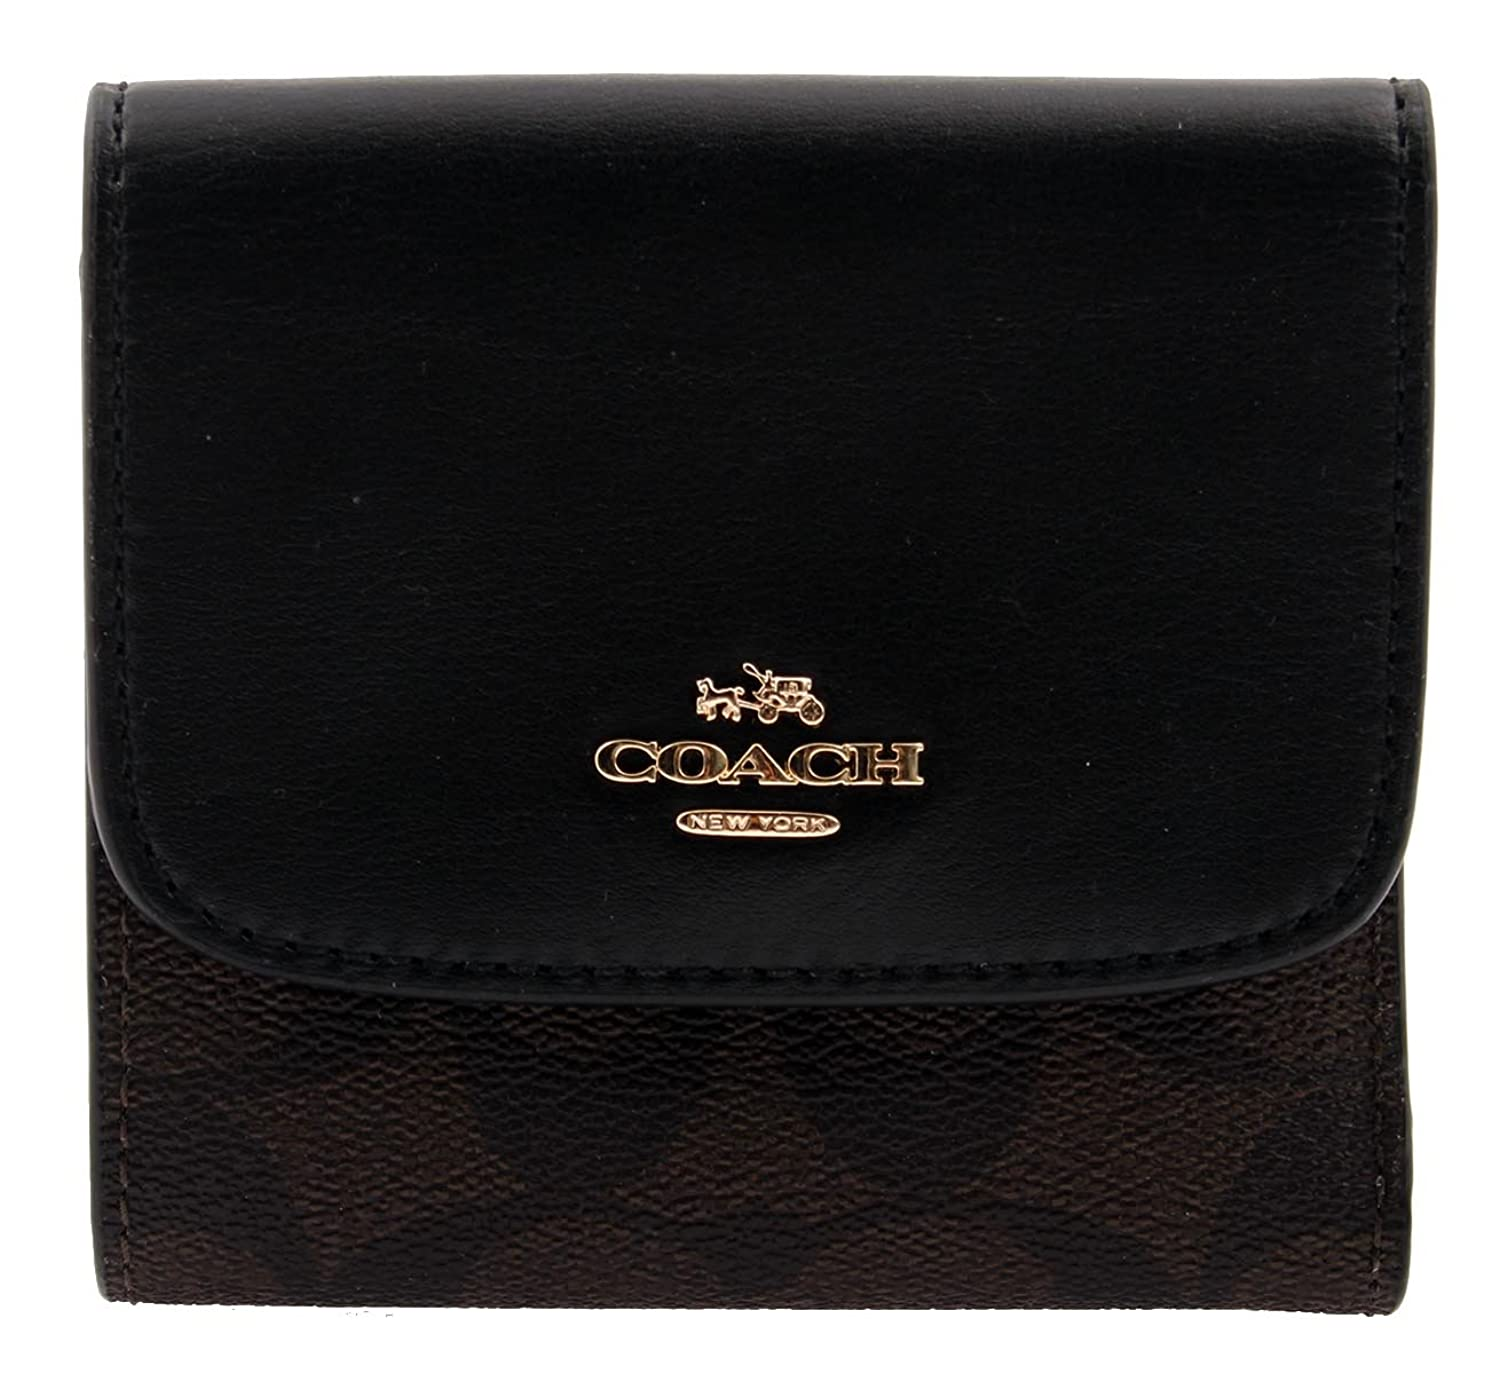 Amazon.com: COACH Small Wallet in Signature Coated Canvas, F87589: Clothing